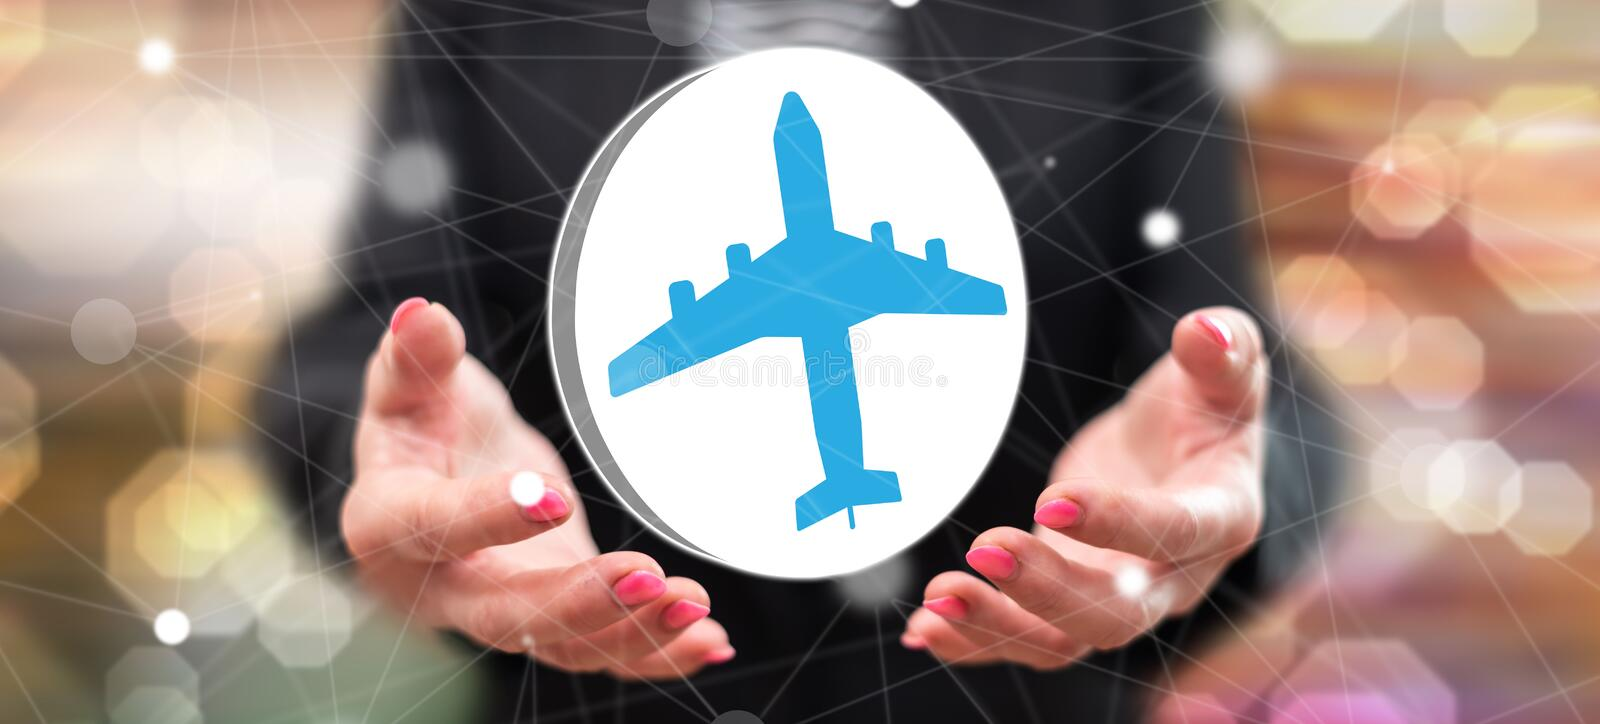 Concept of air transport. Air transport concept above the hands of a woman in background stock image